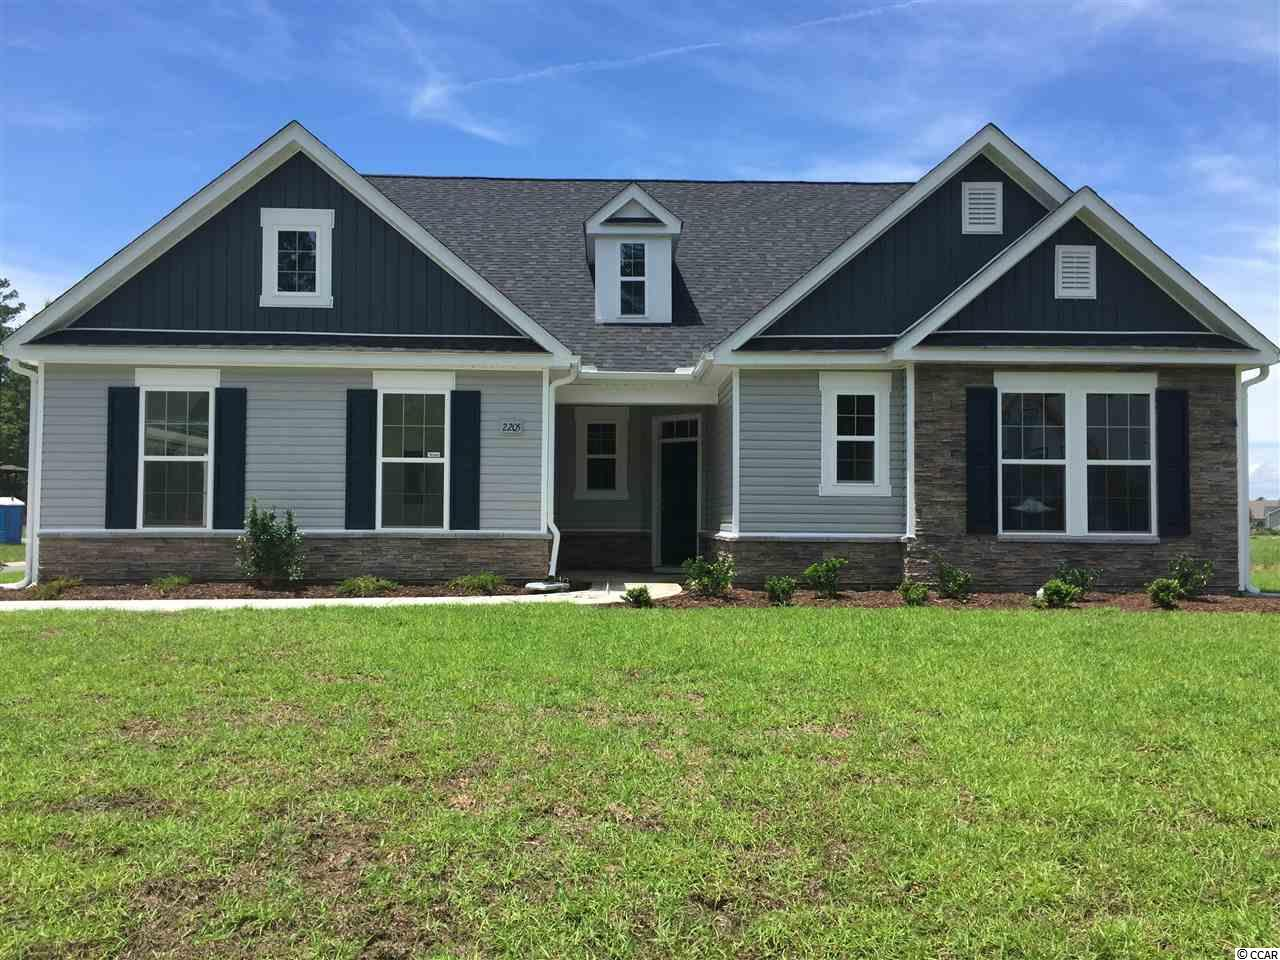 Single Family Home for Sale at 2205 Lindrick Ct. NW 2205 Lindrick Ct. NW Calabash, North Carolina 28467 United States